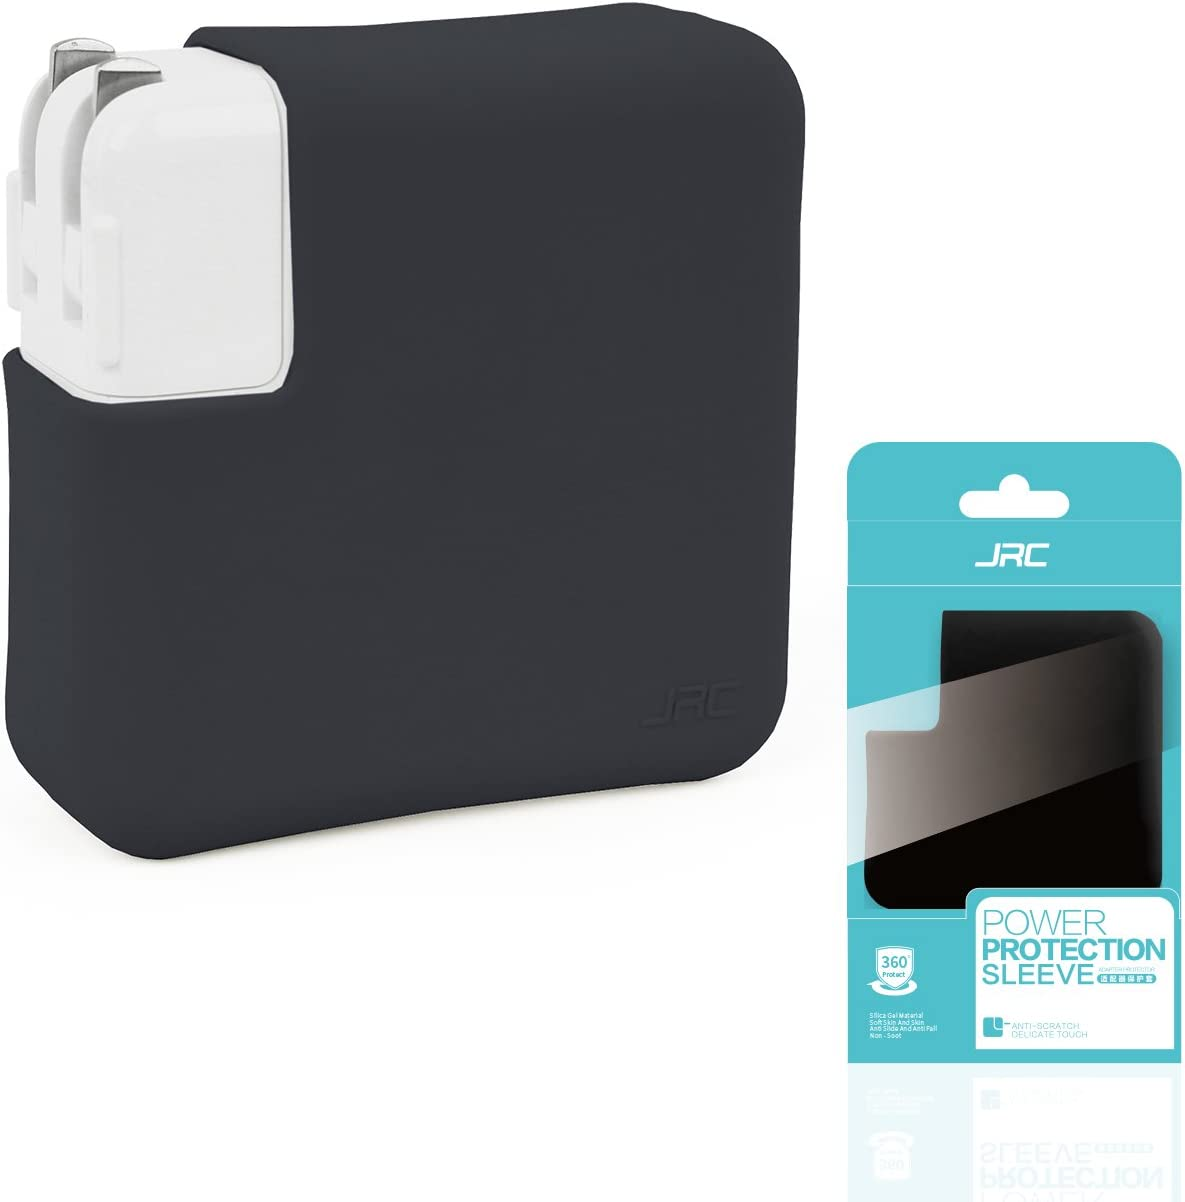 JRC Premium Soft Thin Max 72% OFF Silicone for Protector Charger Manufacturer OFFicial shop 2019+ Case